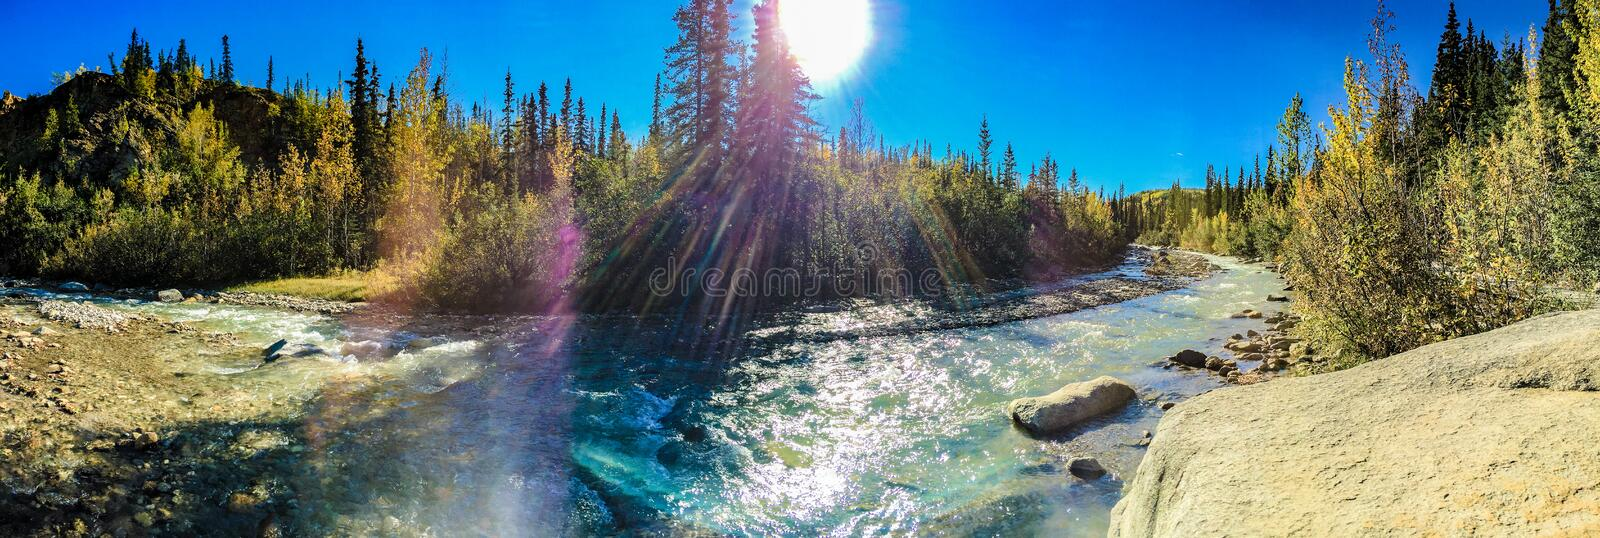 Riley Creek Alaska. Denali, Alaska, USA: Sept. 3, 2016: Panorama of Riley Creek in the sunshine. Creek is located near the entrance to Denali National Park in stock photo